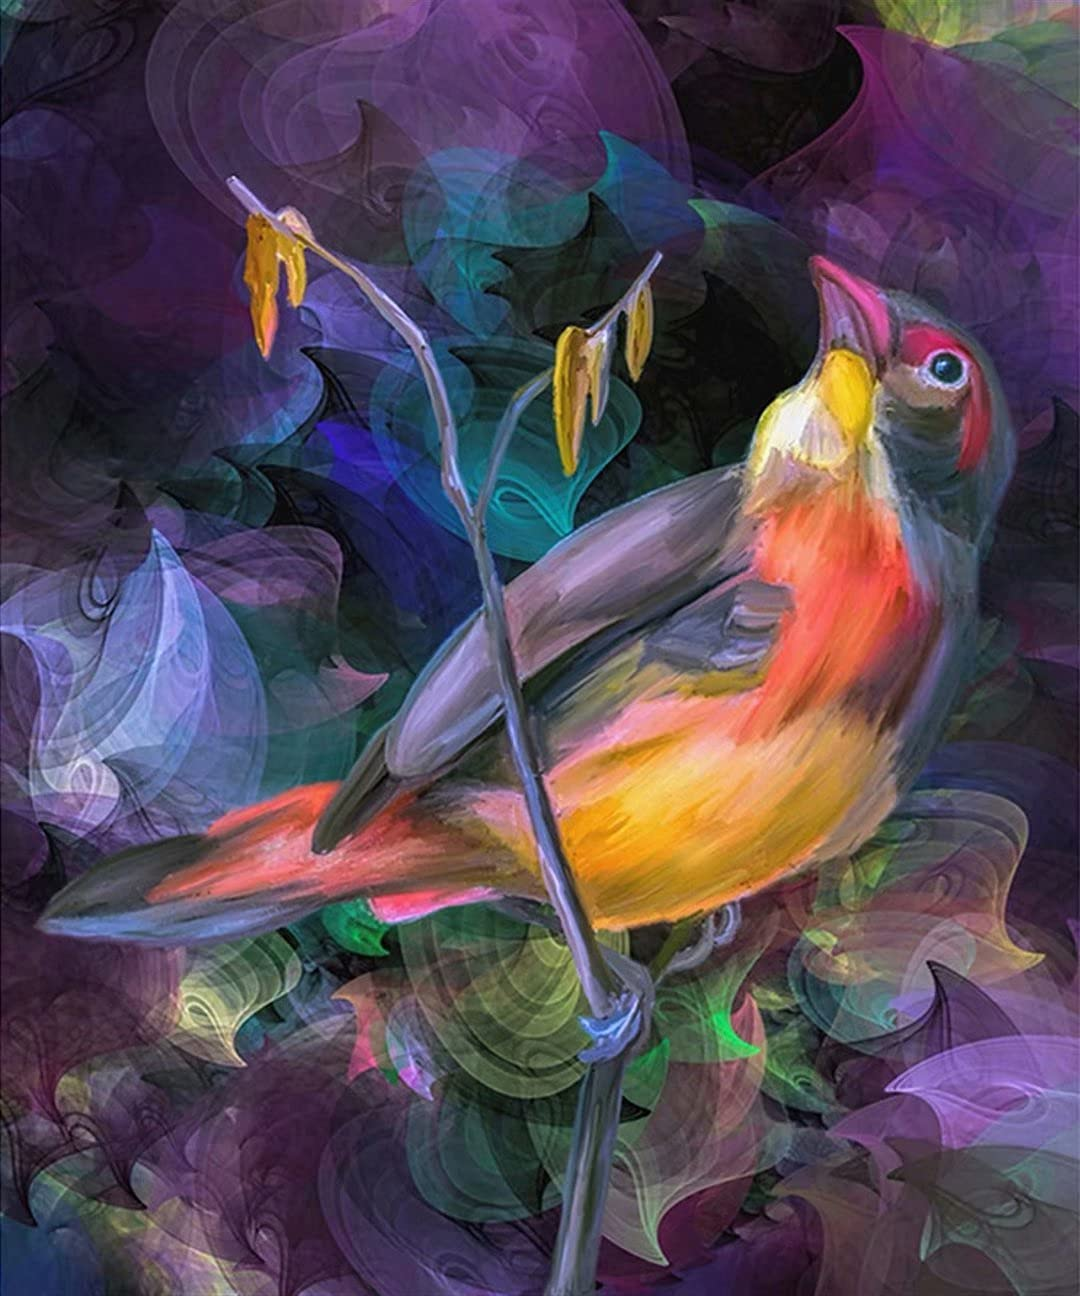 Mstoio Popular Jigsaw Puzzles for Adults Piece Wooden NEW before selling 3000 Bird Painted